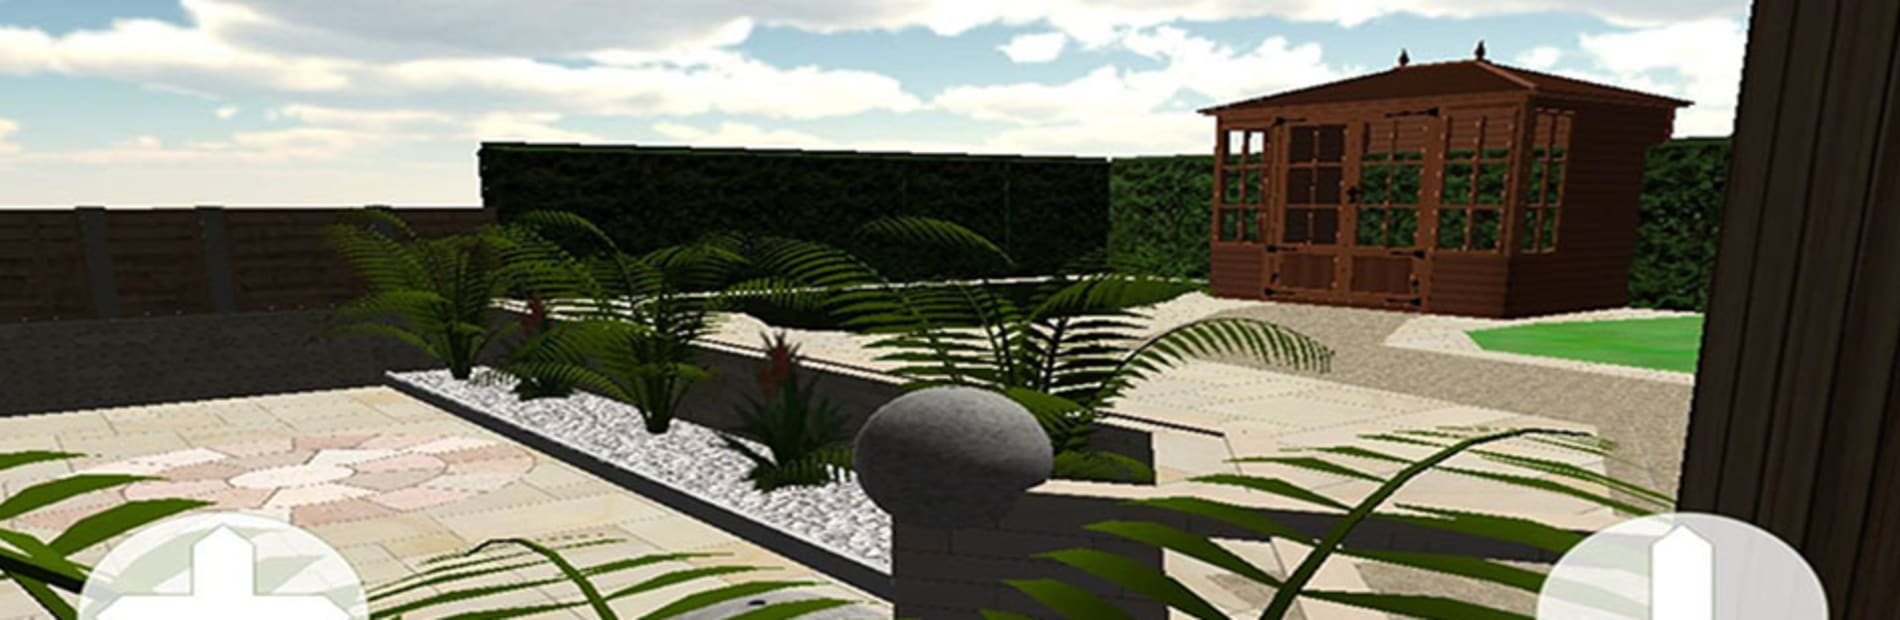 computer generated image of a 3-d garden design